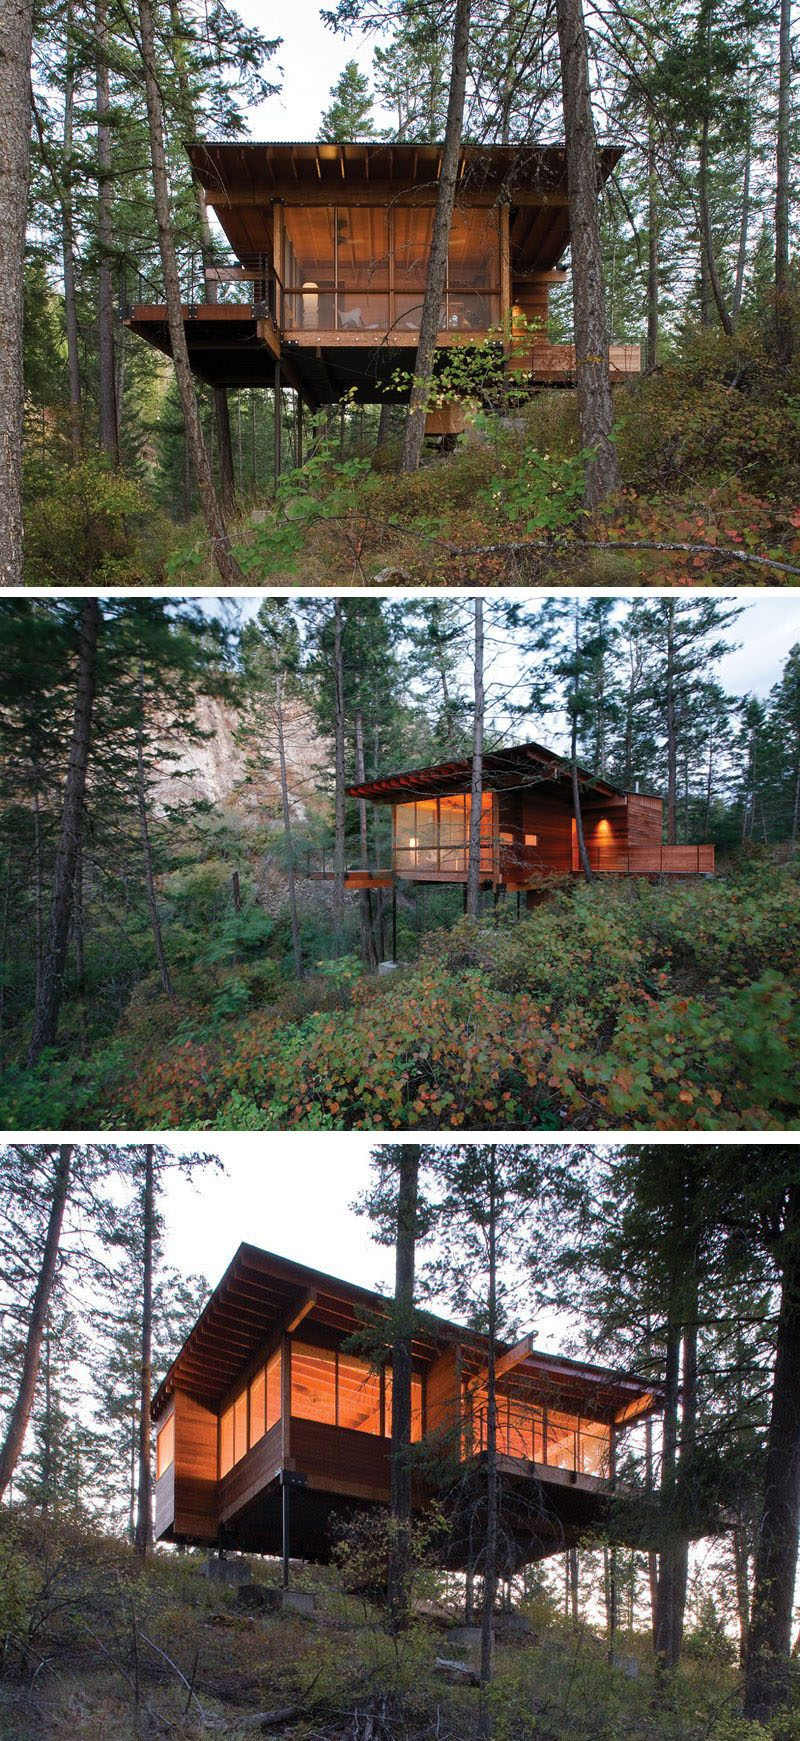 18 Modern House In The Forest // This Forest House Is Lifted Right Up Into